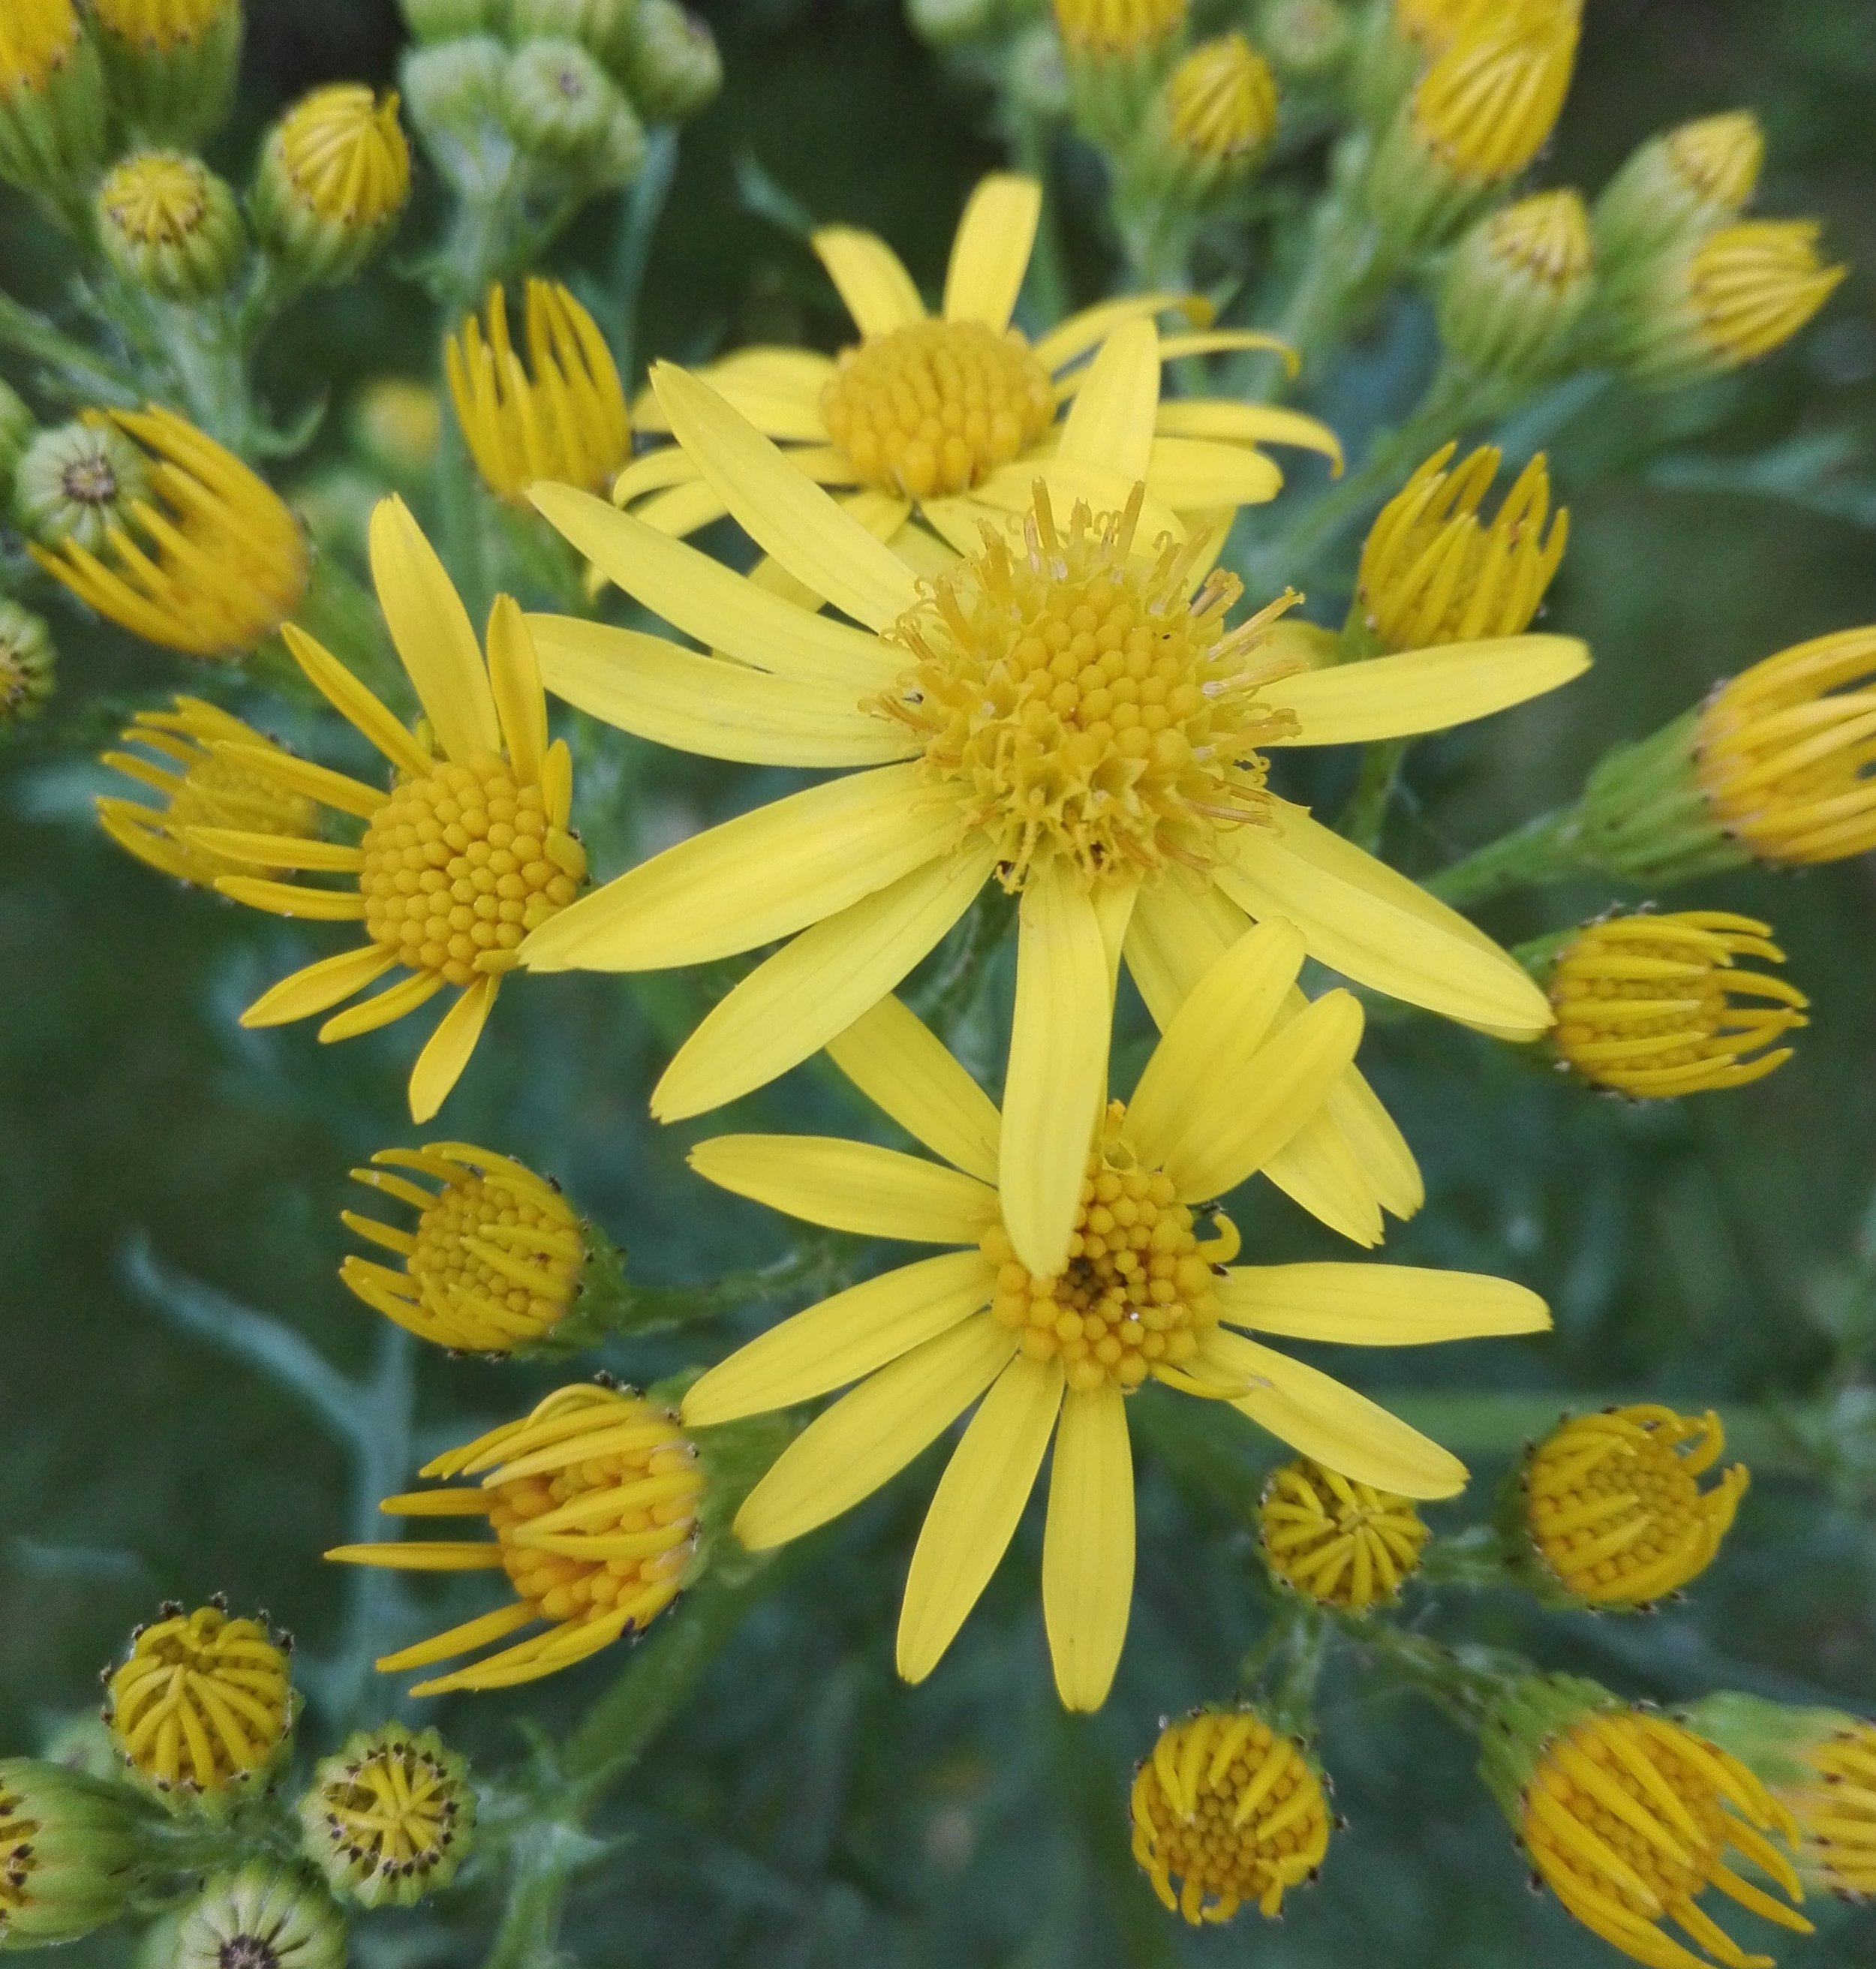 #522 Common Ragwort (Senecio jacobaea)